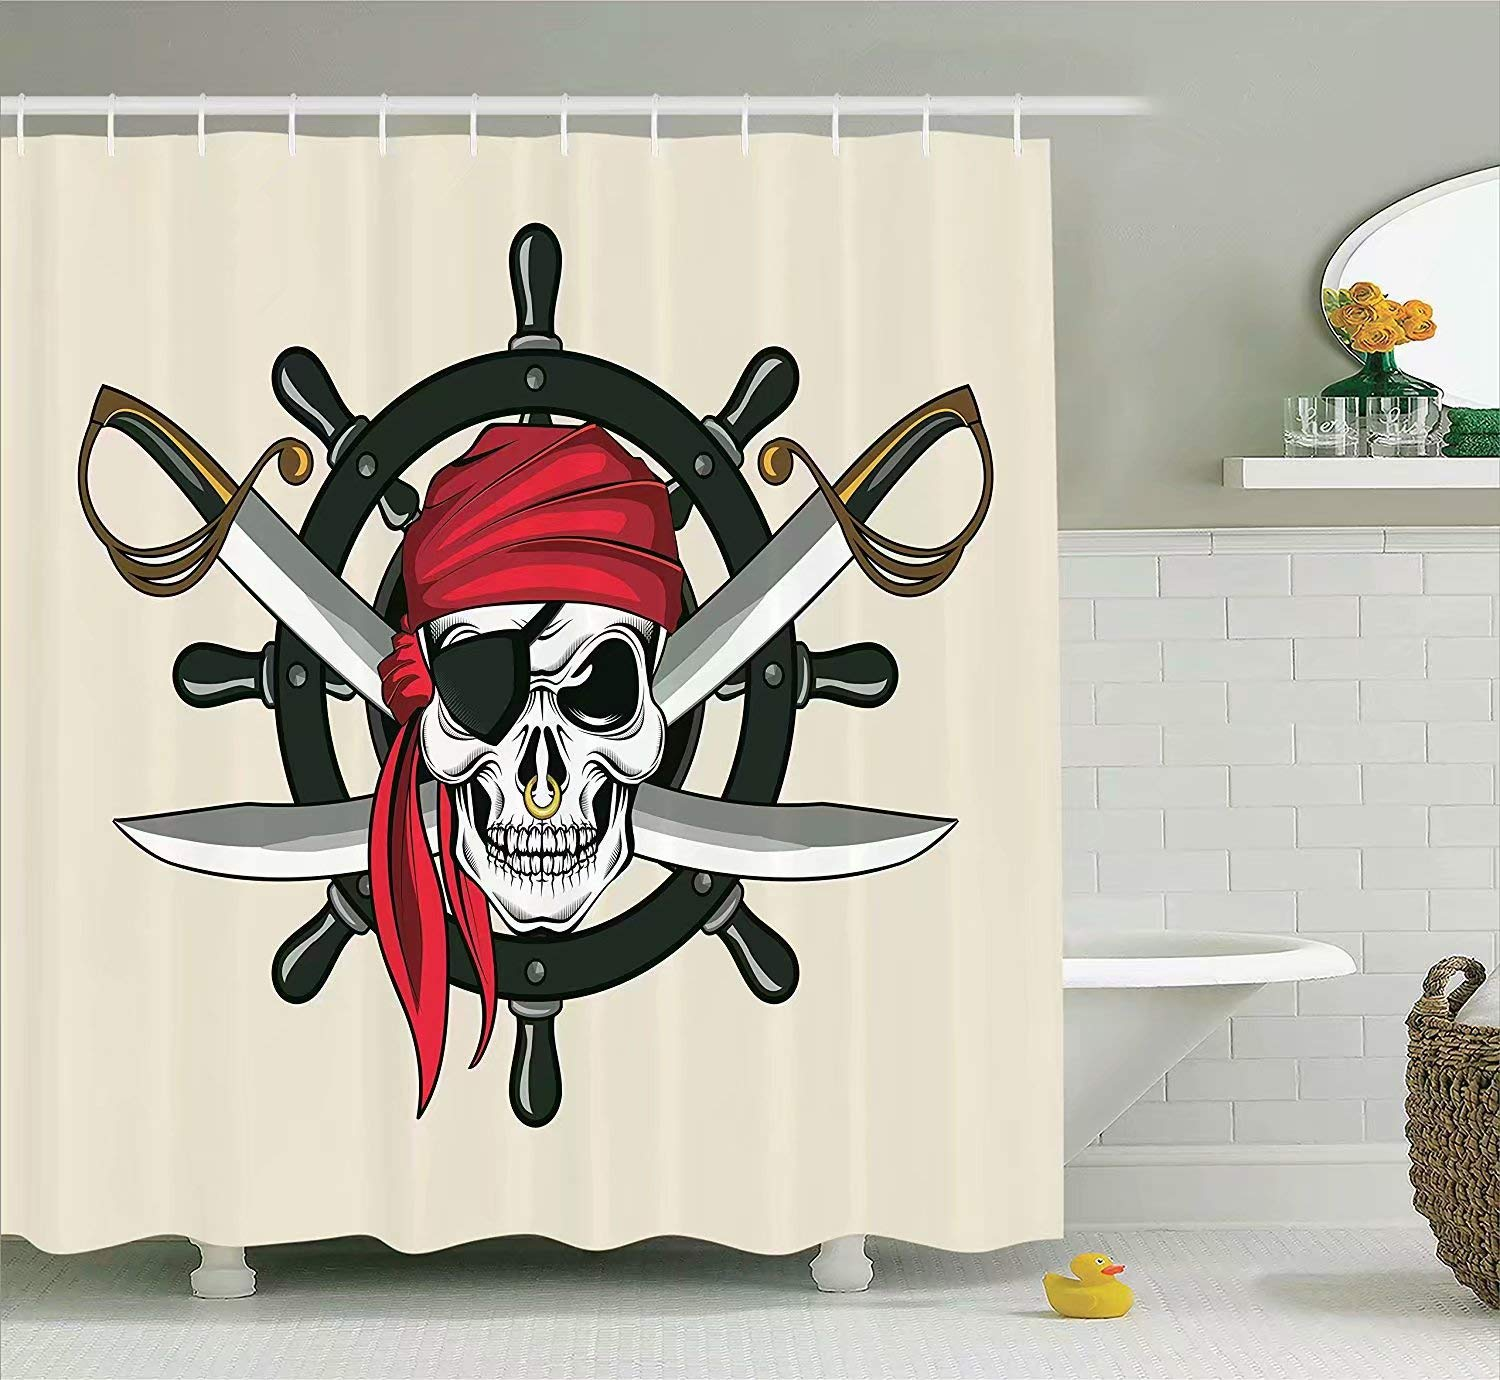 KANATSIU Pirate Skull Scarf Crossed Swords Violence Sea Sailing Image Shower Curtain 12 Plactic Hooks,100% Made Polyester,Mildew Resistant & Machine Washable,Width x Height is 60x72